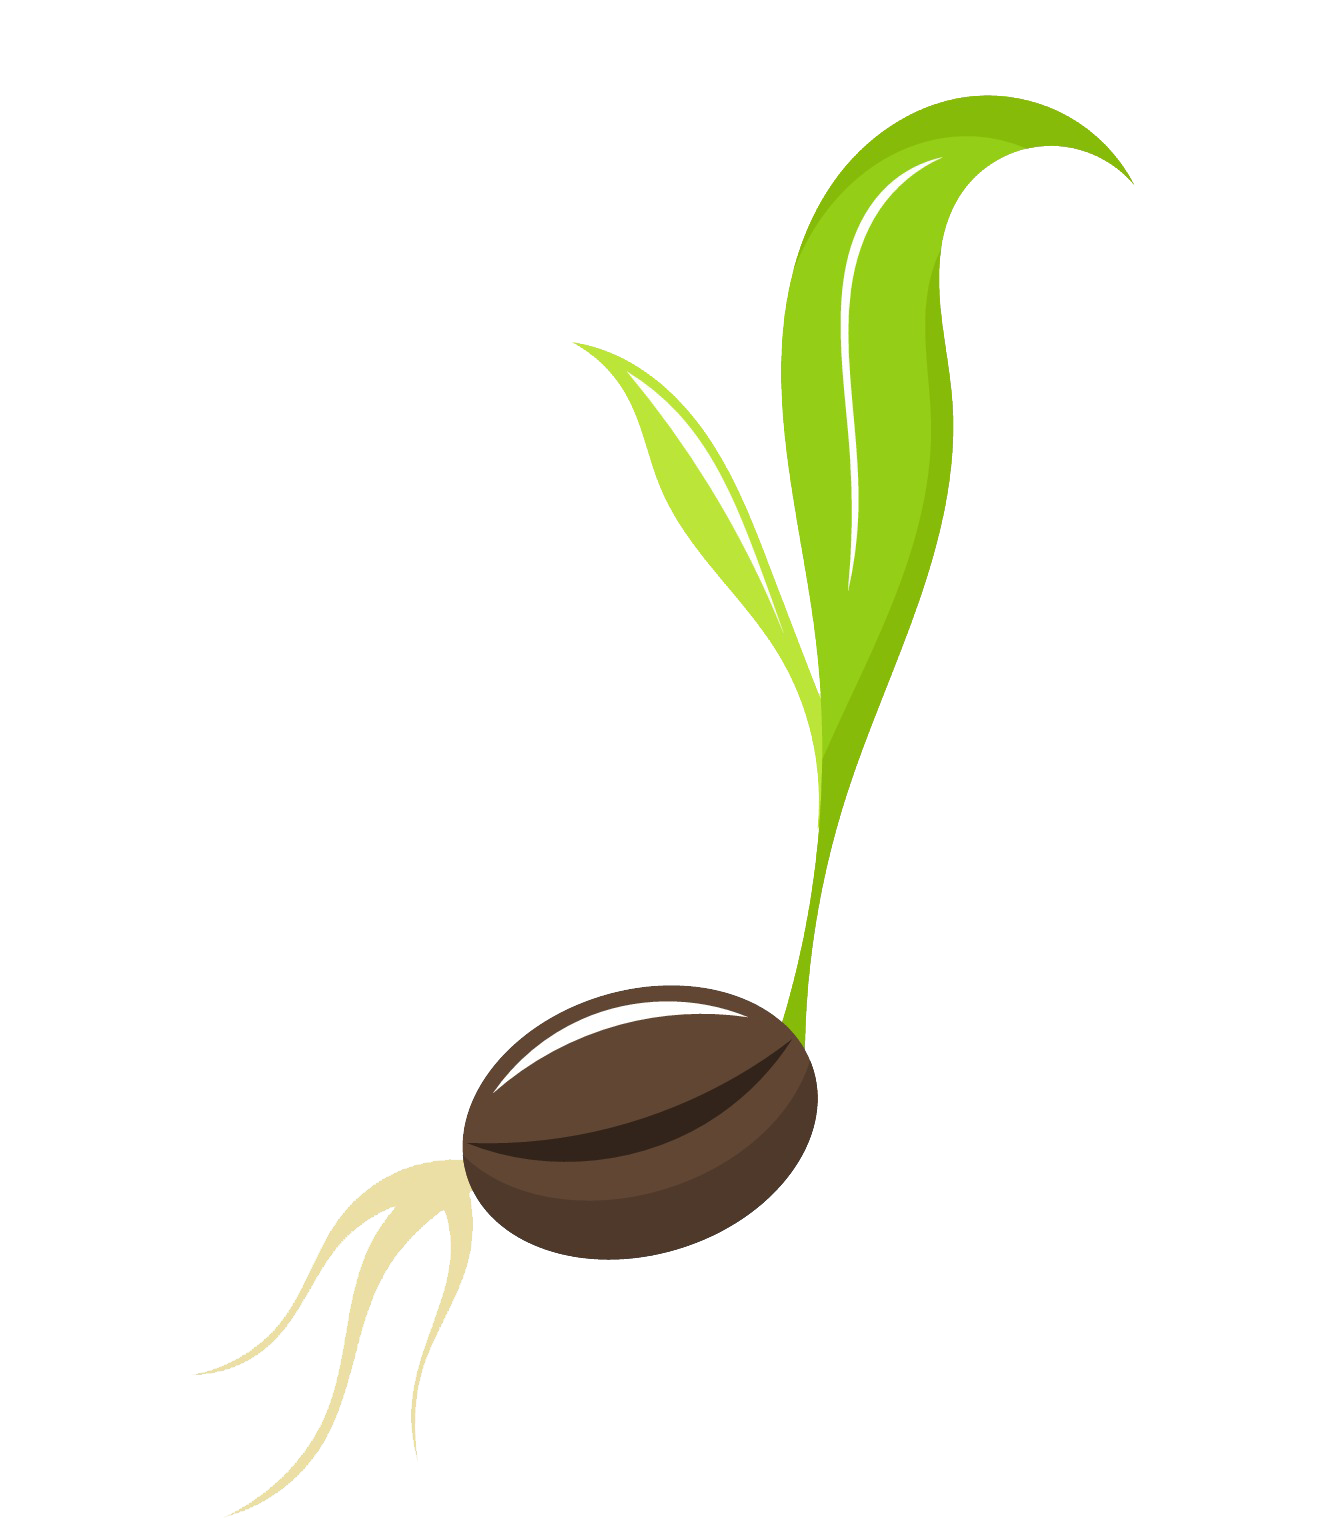 Planting clipart plant seed, Planting plant seed Transparent.